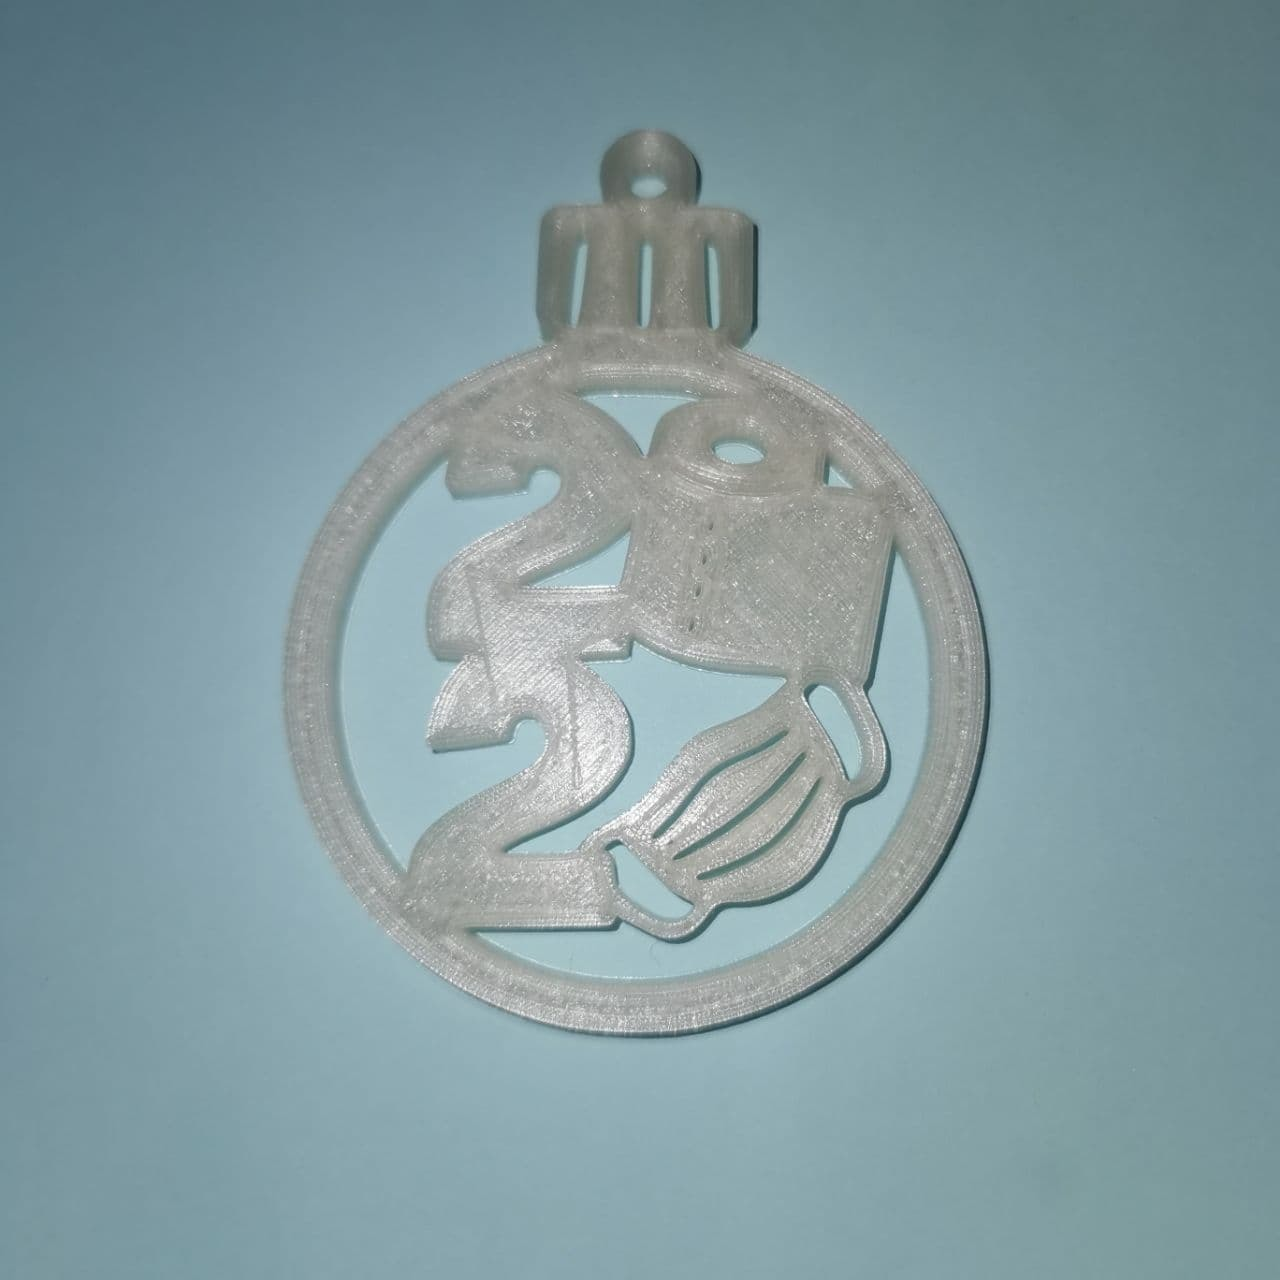 photo_2020-11-16_15-00-36.jpg Download free STL file 2020 covid xmas decoration • 3D print template, Chill_3D_Printing